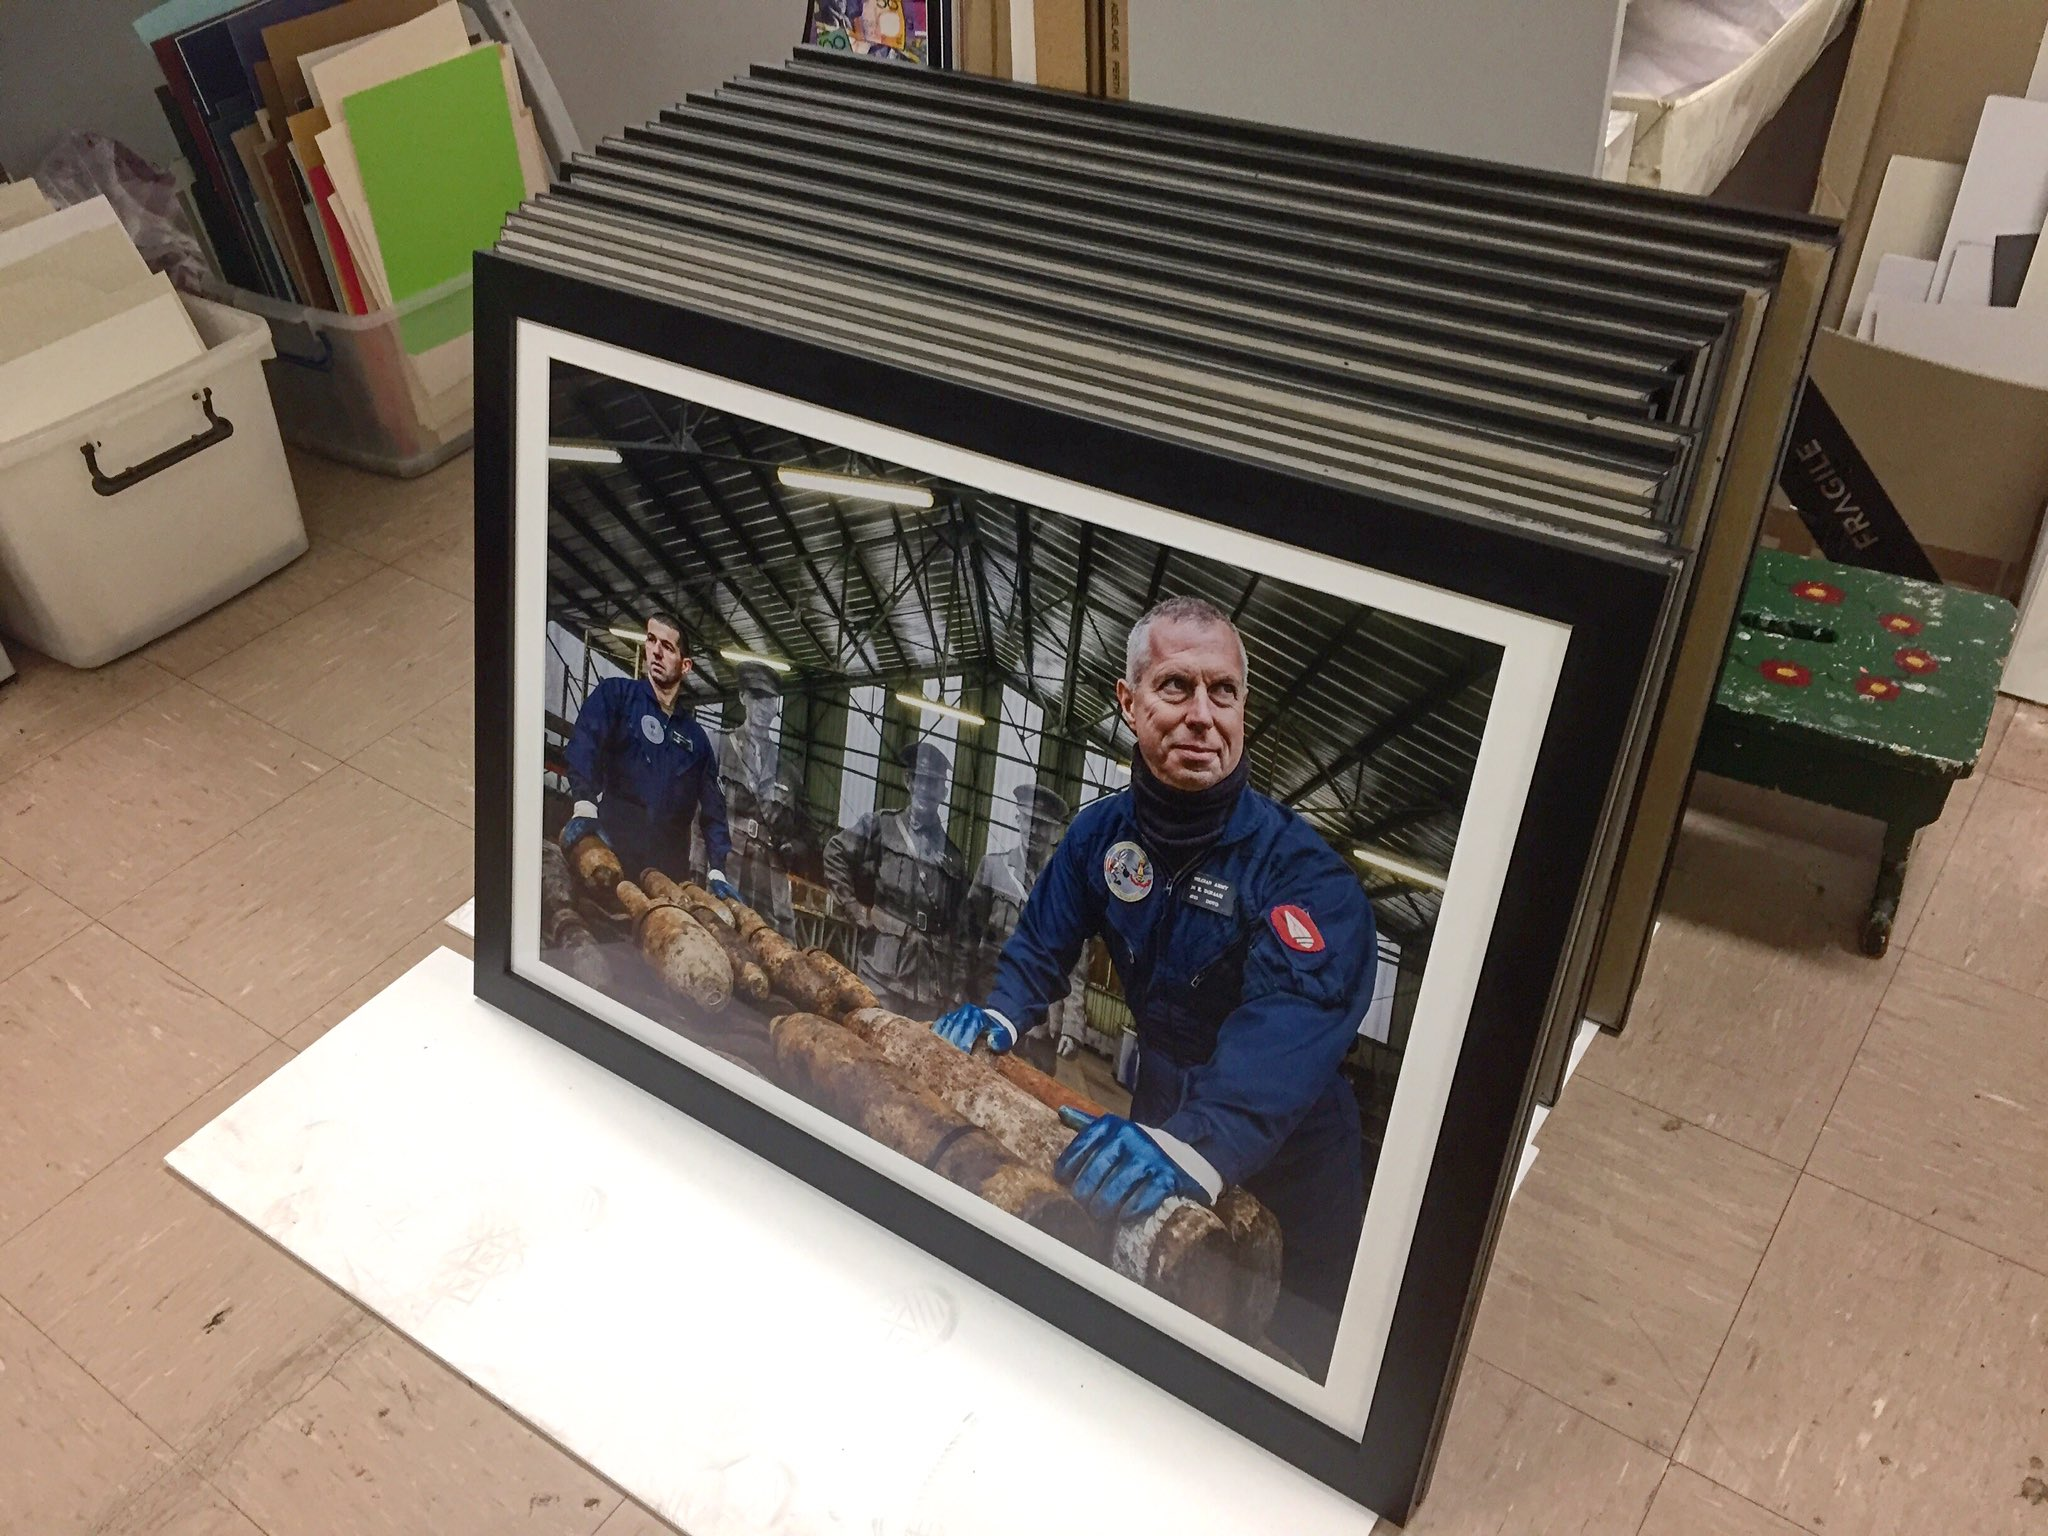 Framed and awaiting delivery to Gatakers Artspace, the prints for the Australian debut of 'Recovering The Past' are pictured at framers Artplus, Bundaberg.